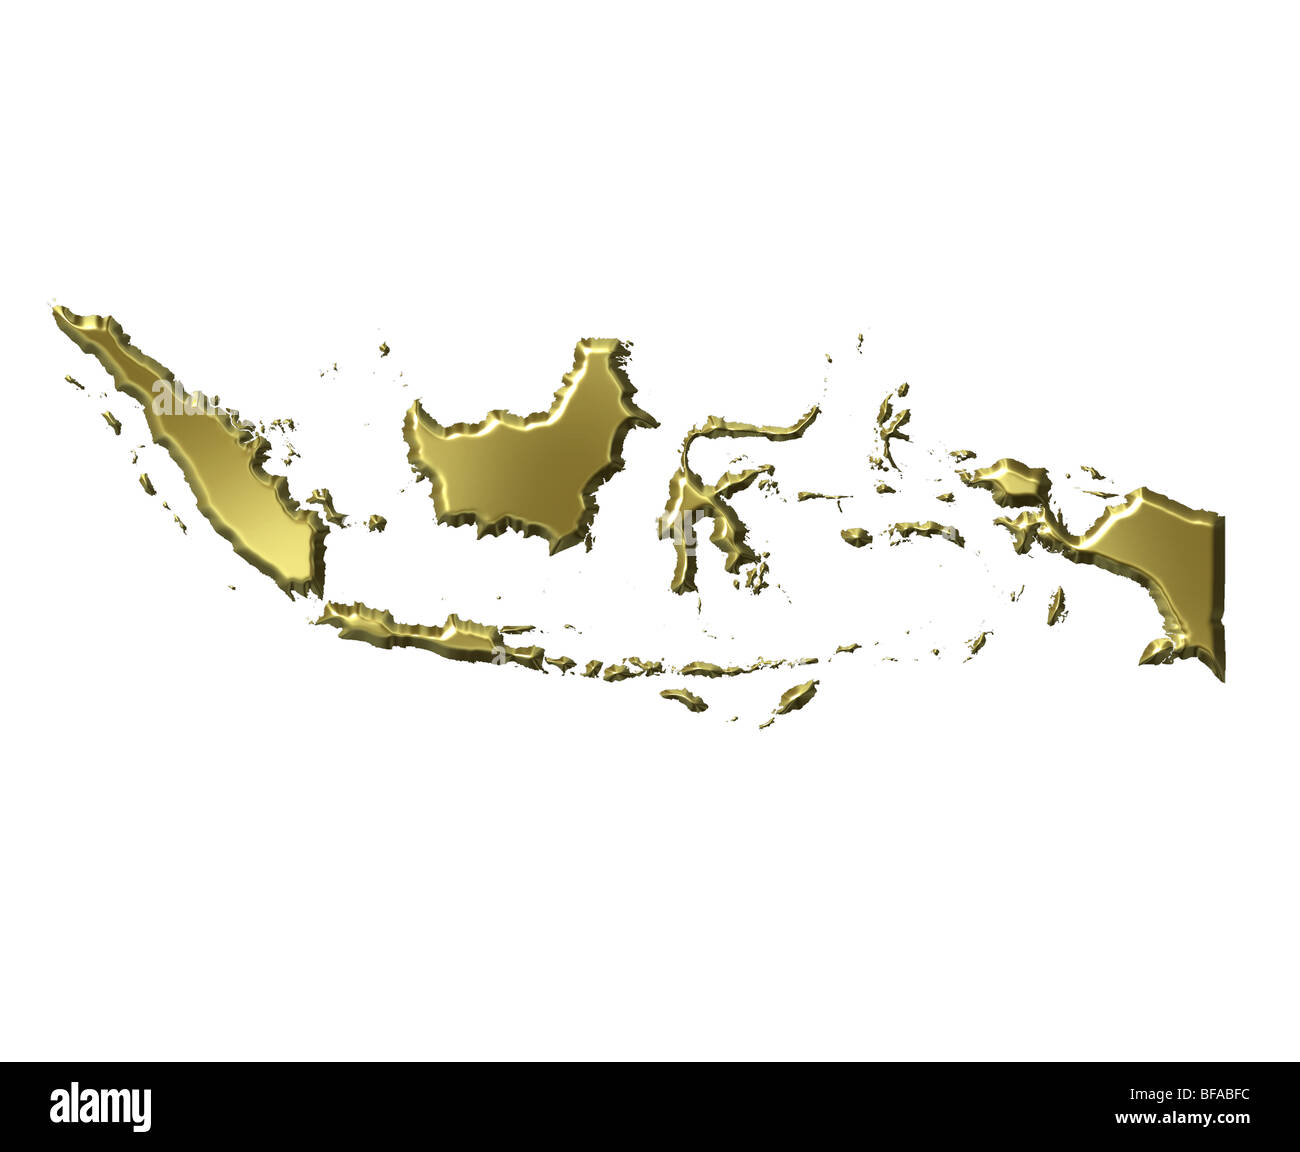 indonesia map high resolution stock photography and images alamy https www alamy com stock photo indonesia 3d golden map 26658784 html